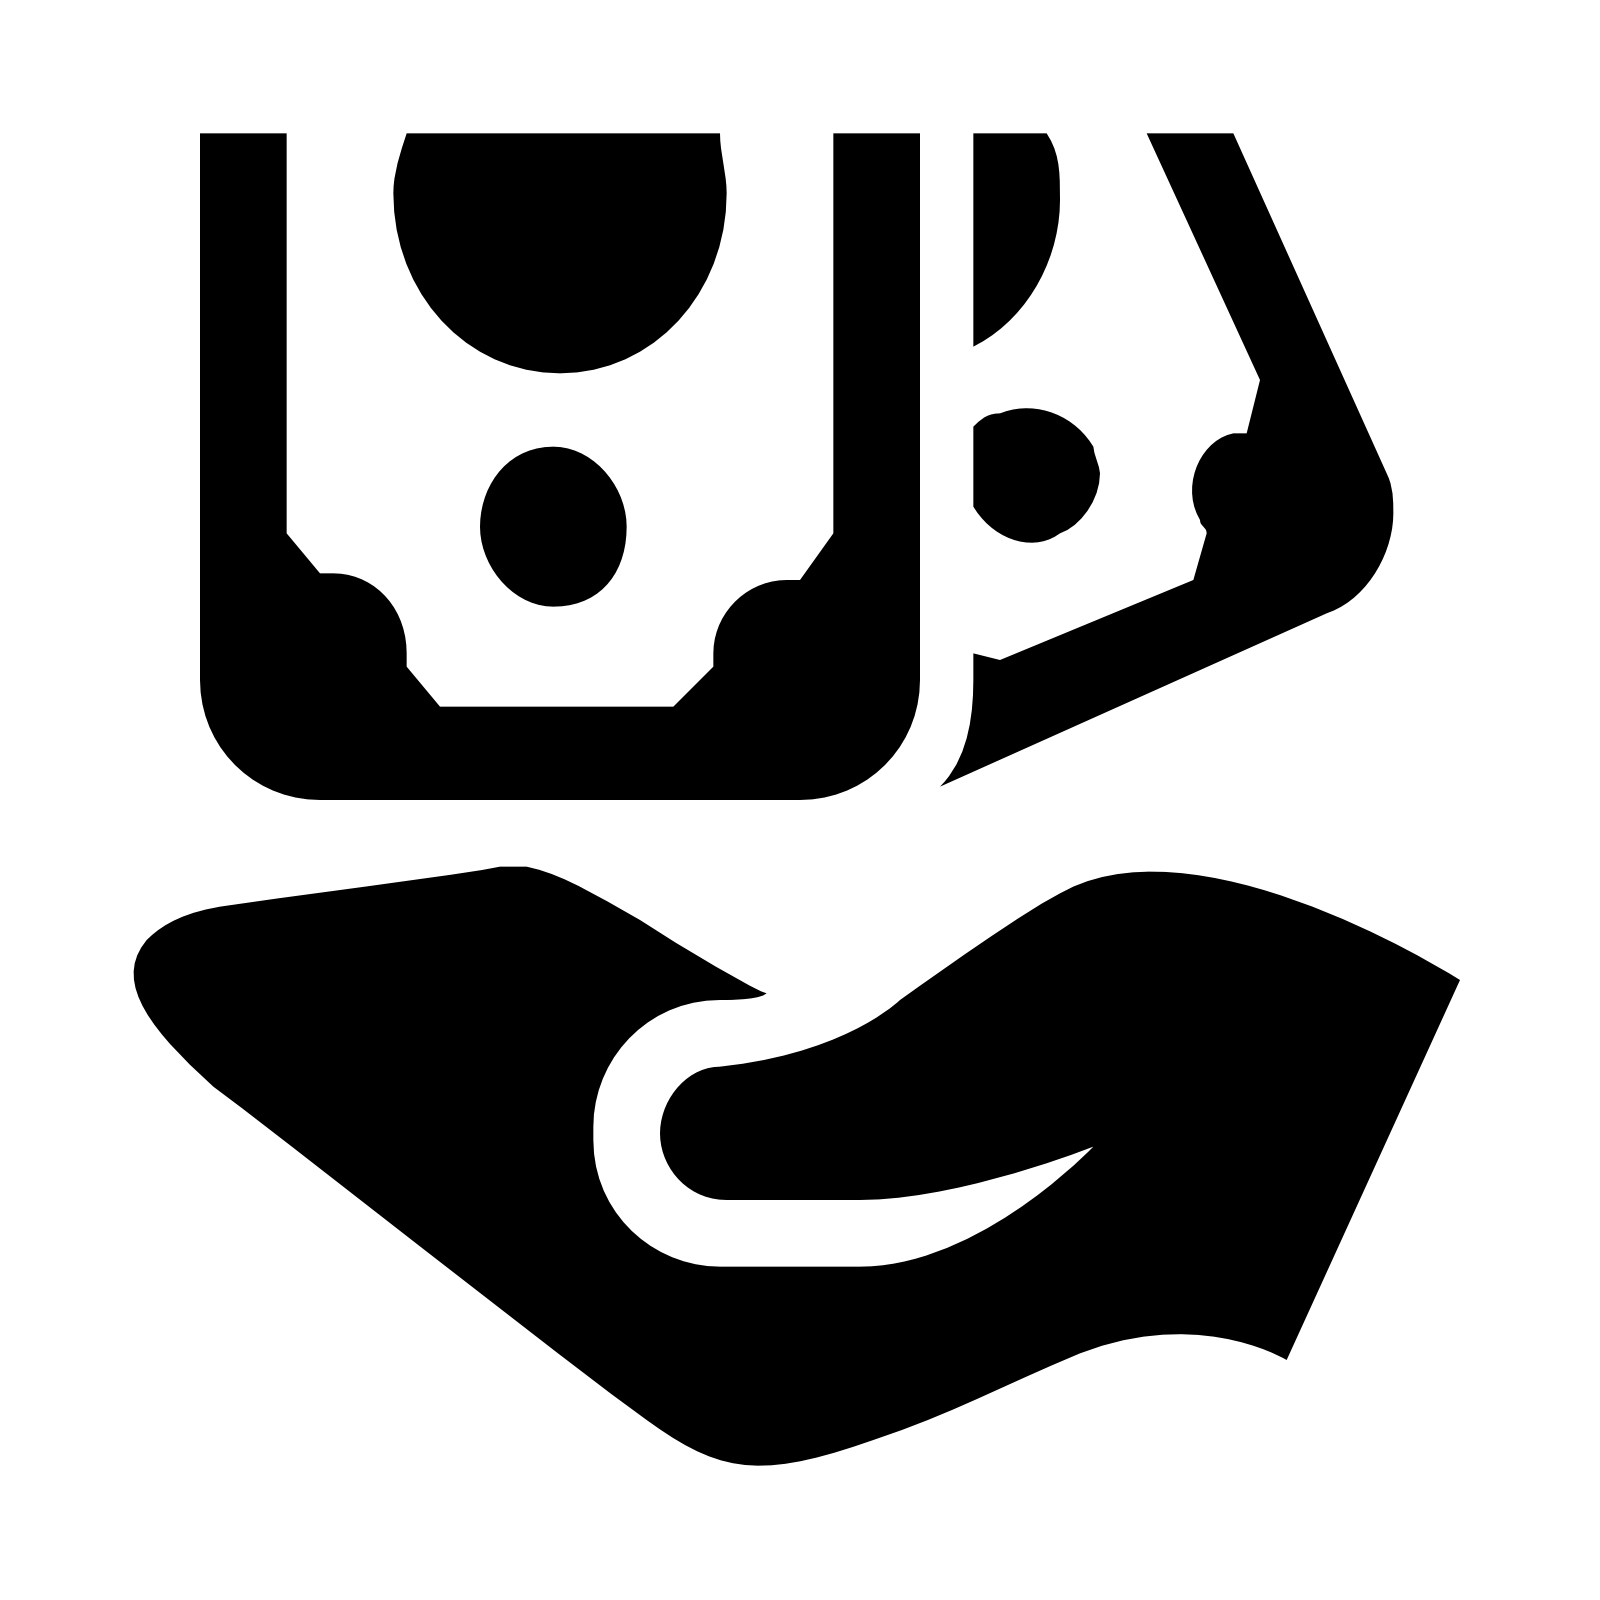 Refund Icon - Refund, Transparent background PNG HD thumbnail